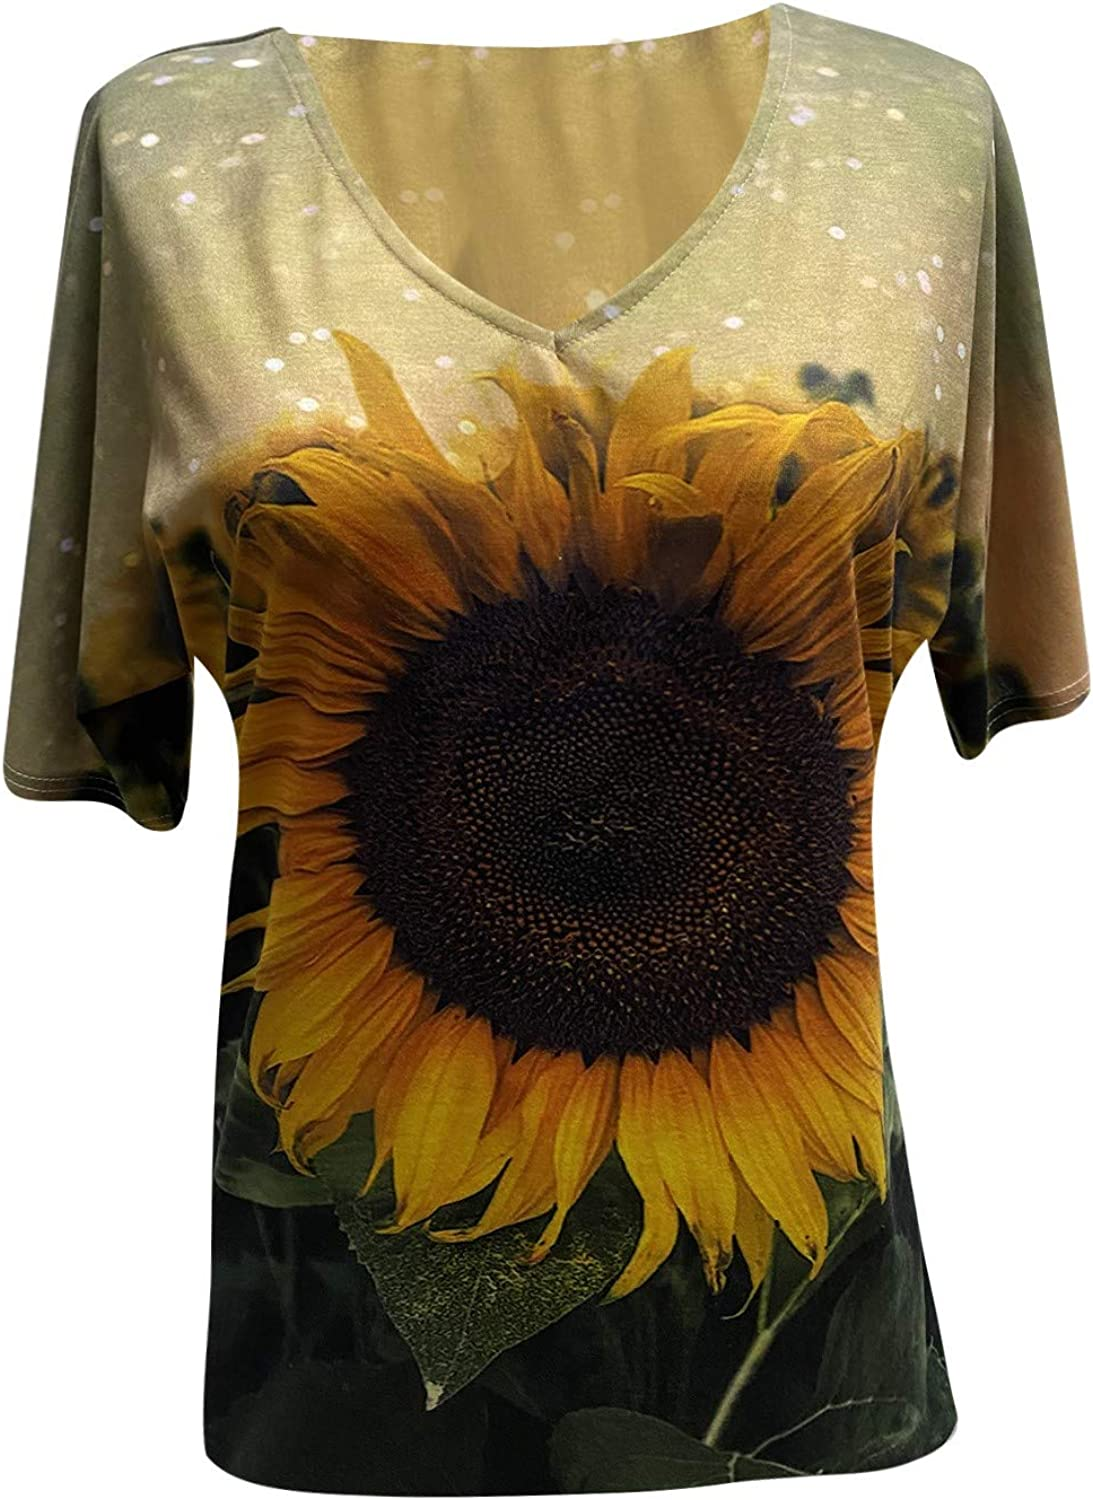 Blouses for Women Fashion Summer,Women Short Sleeve Graphic Cute Floral Printed Loose Casual Graphic Tee Shirt Blouses